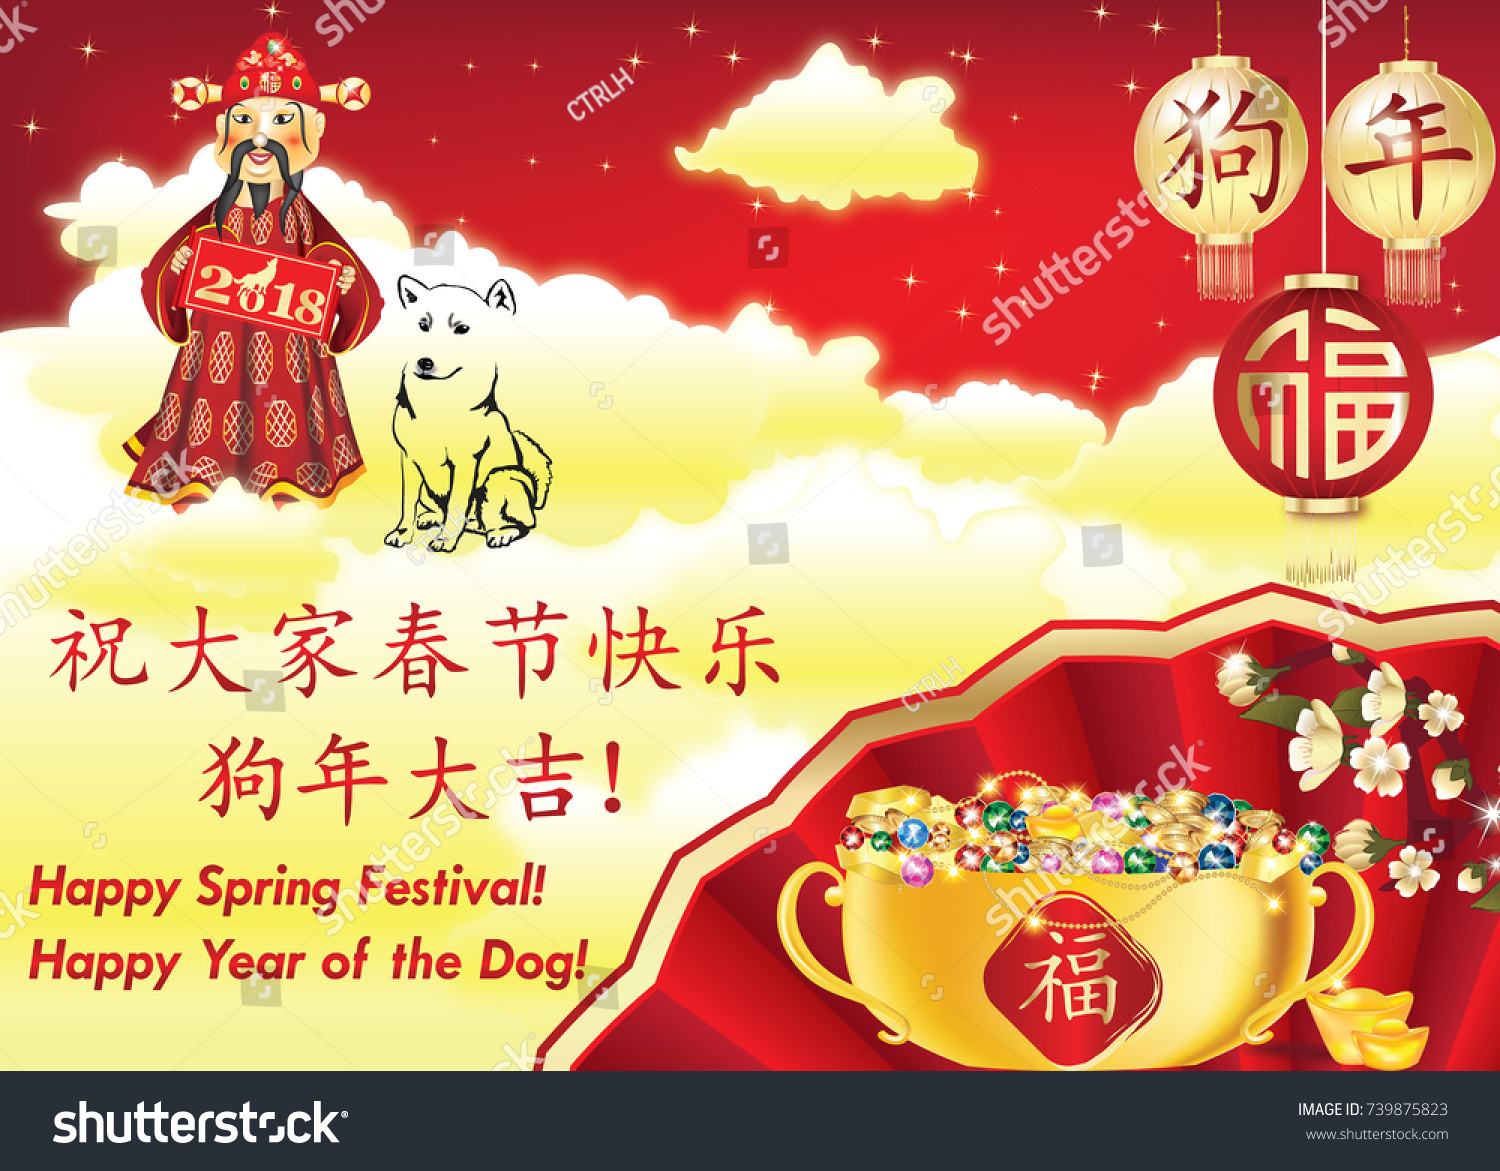 Greeting card chinese new year dog stock illustration 739875823 greeting card for the chinese new year of the dog 2018 text happy spring m4hsunfo